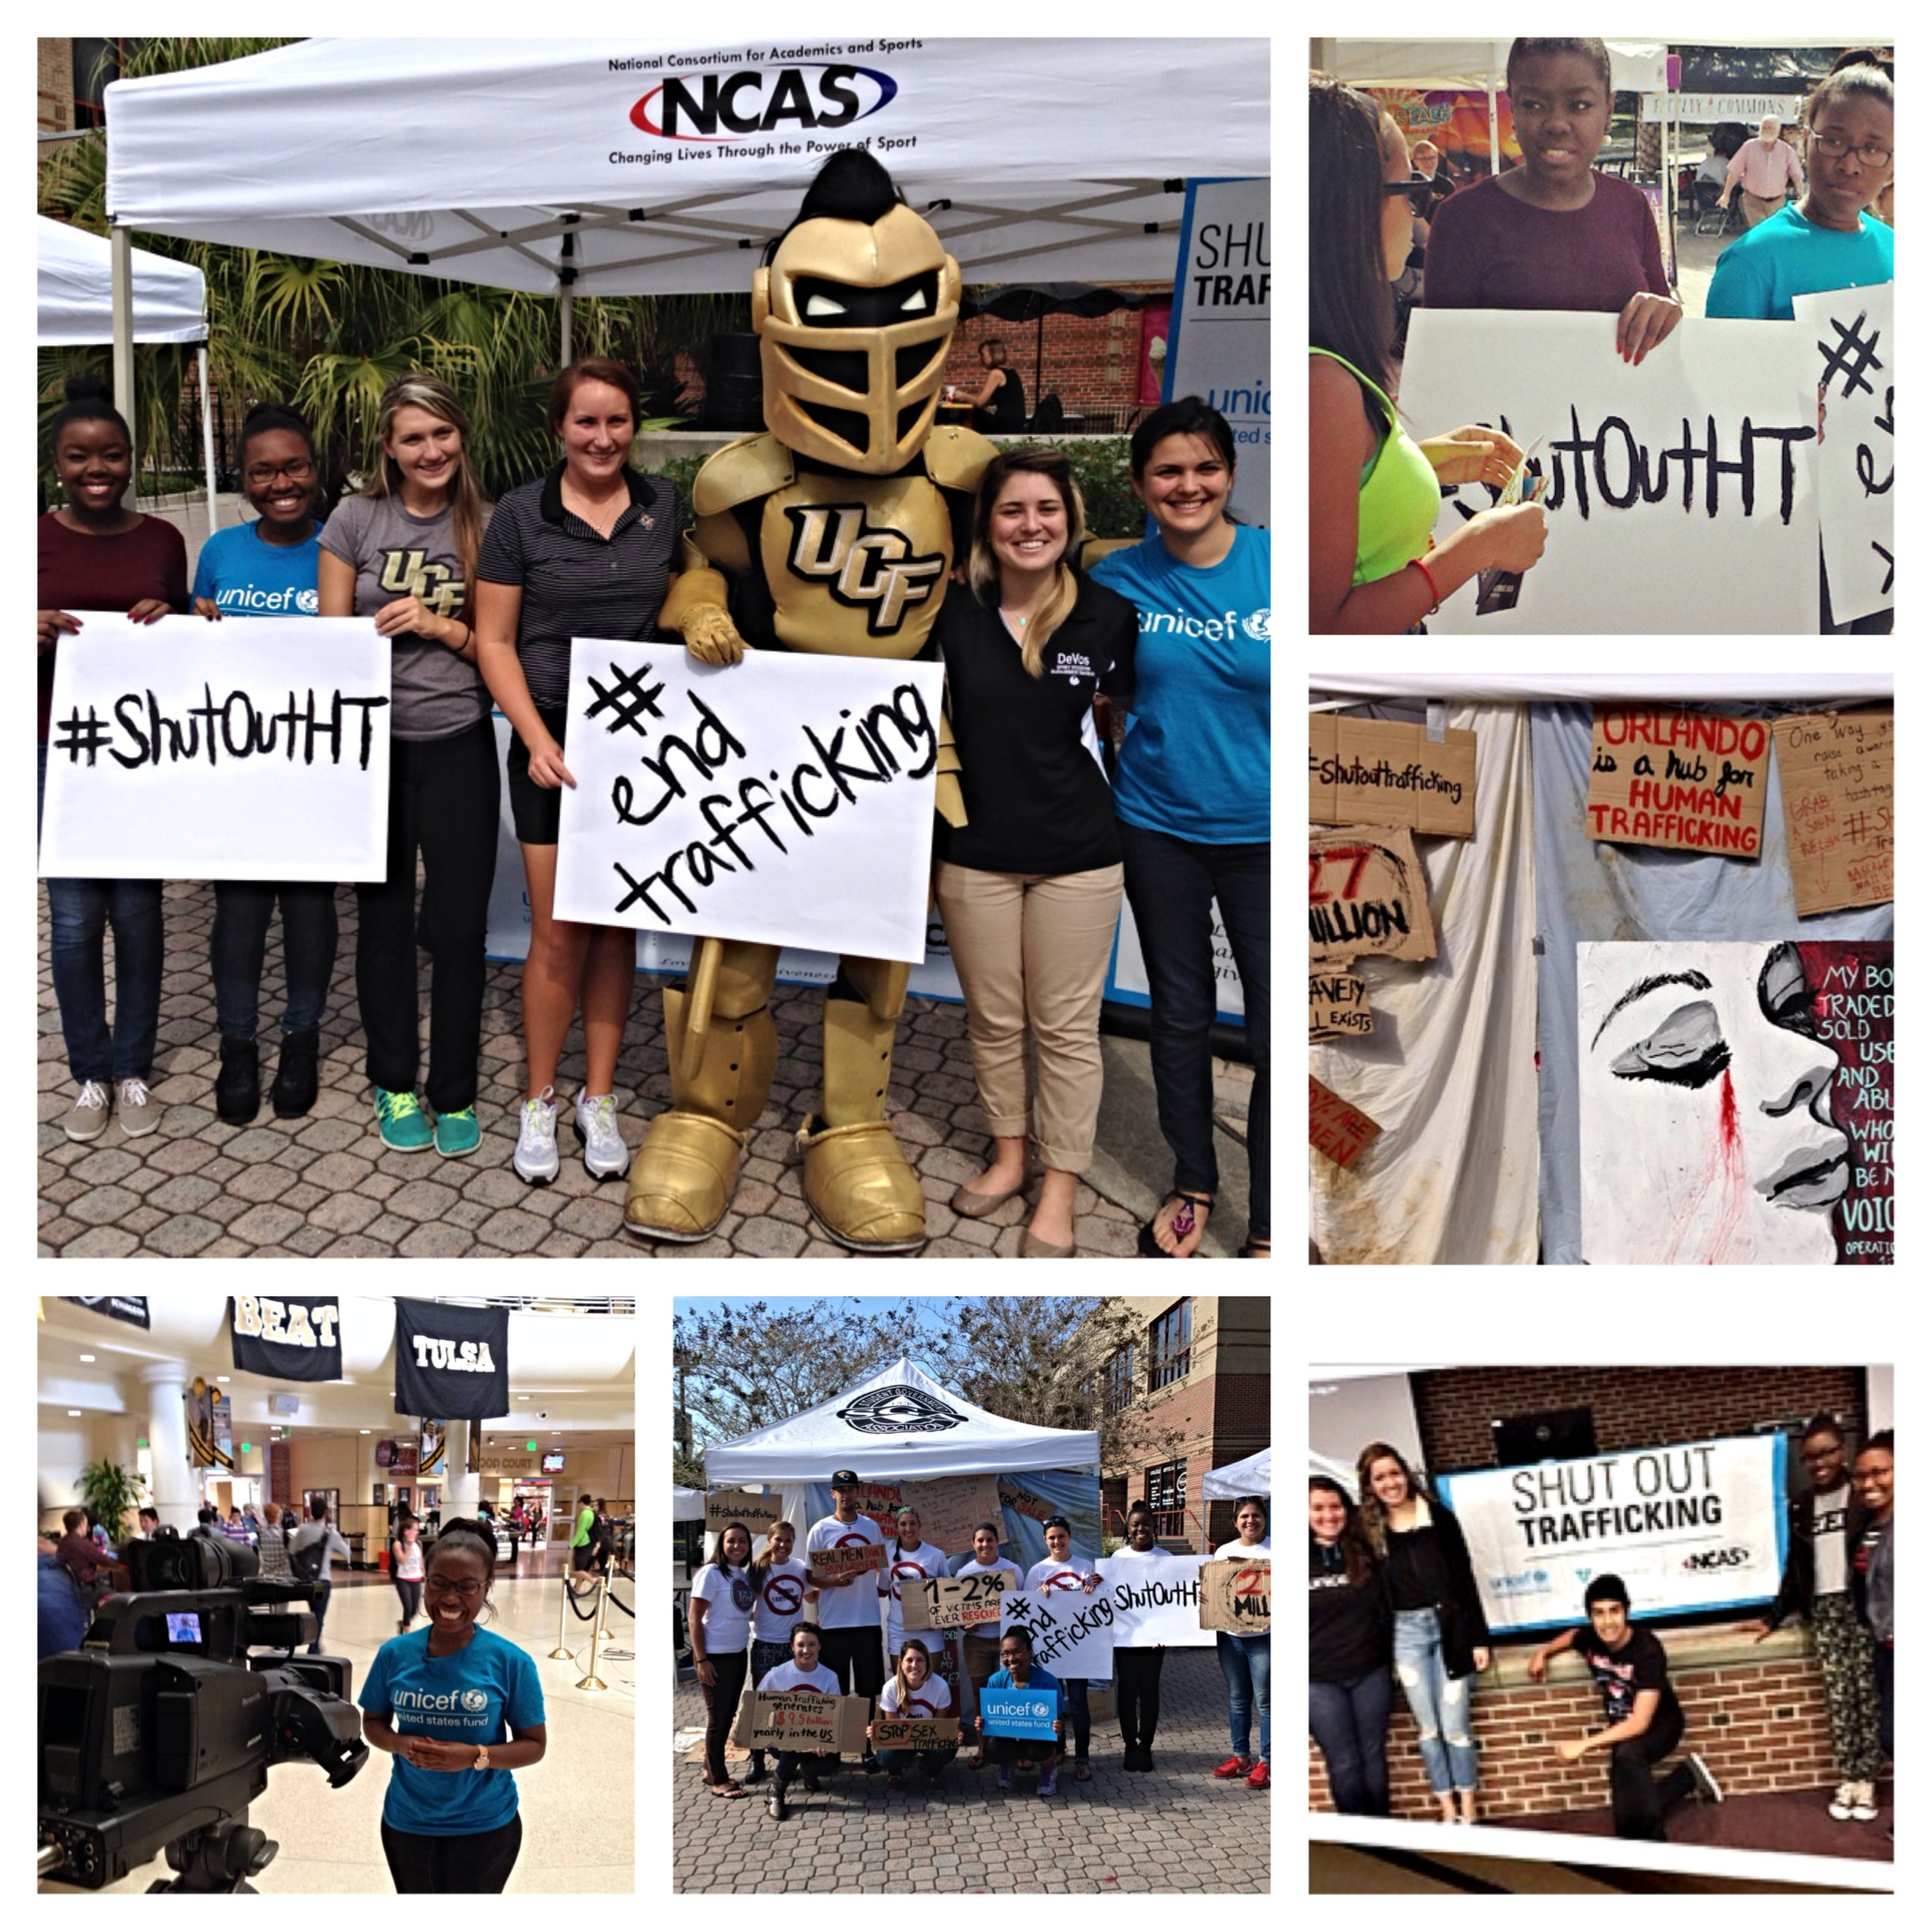 Shut Out Trafficking activities take place at UCF